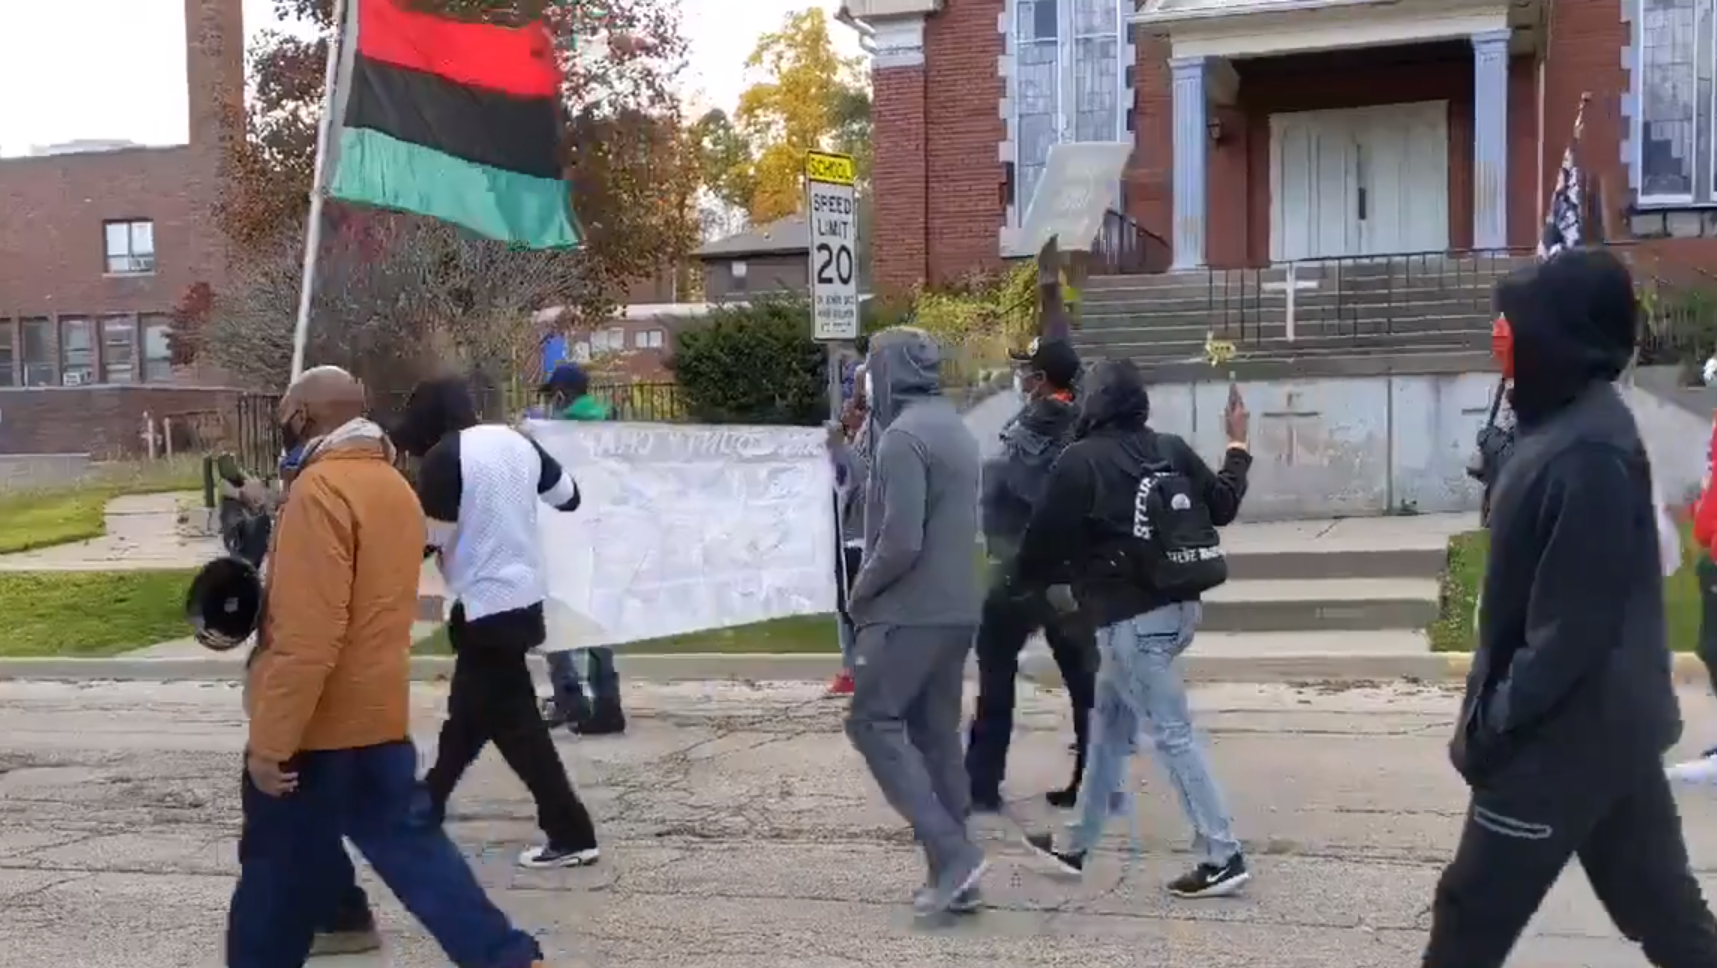 Protests Break out in Waukegan After Murder of Black Man